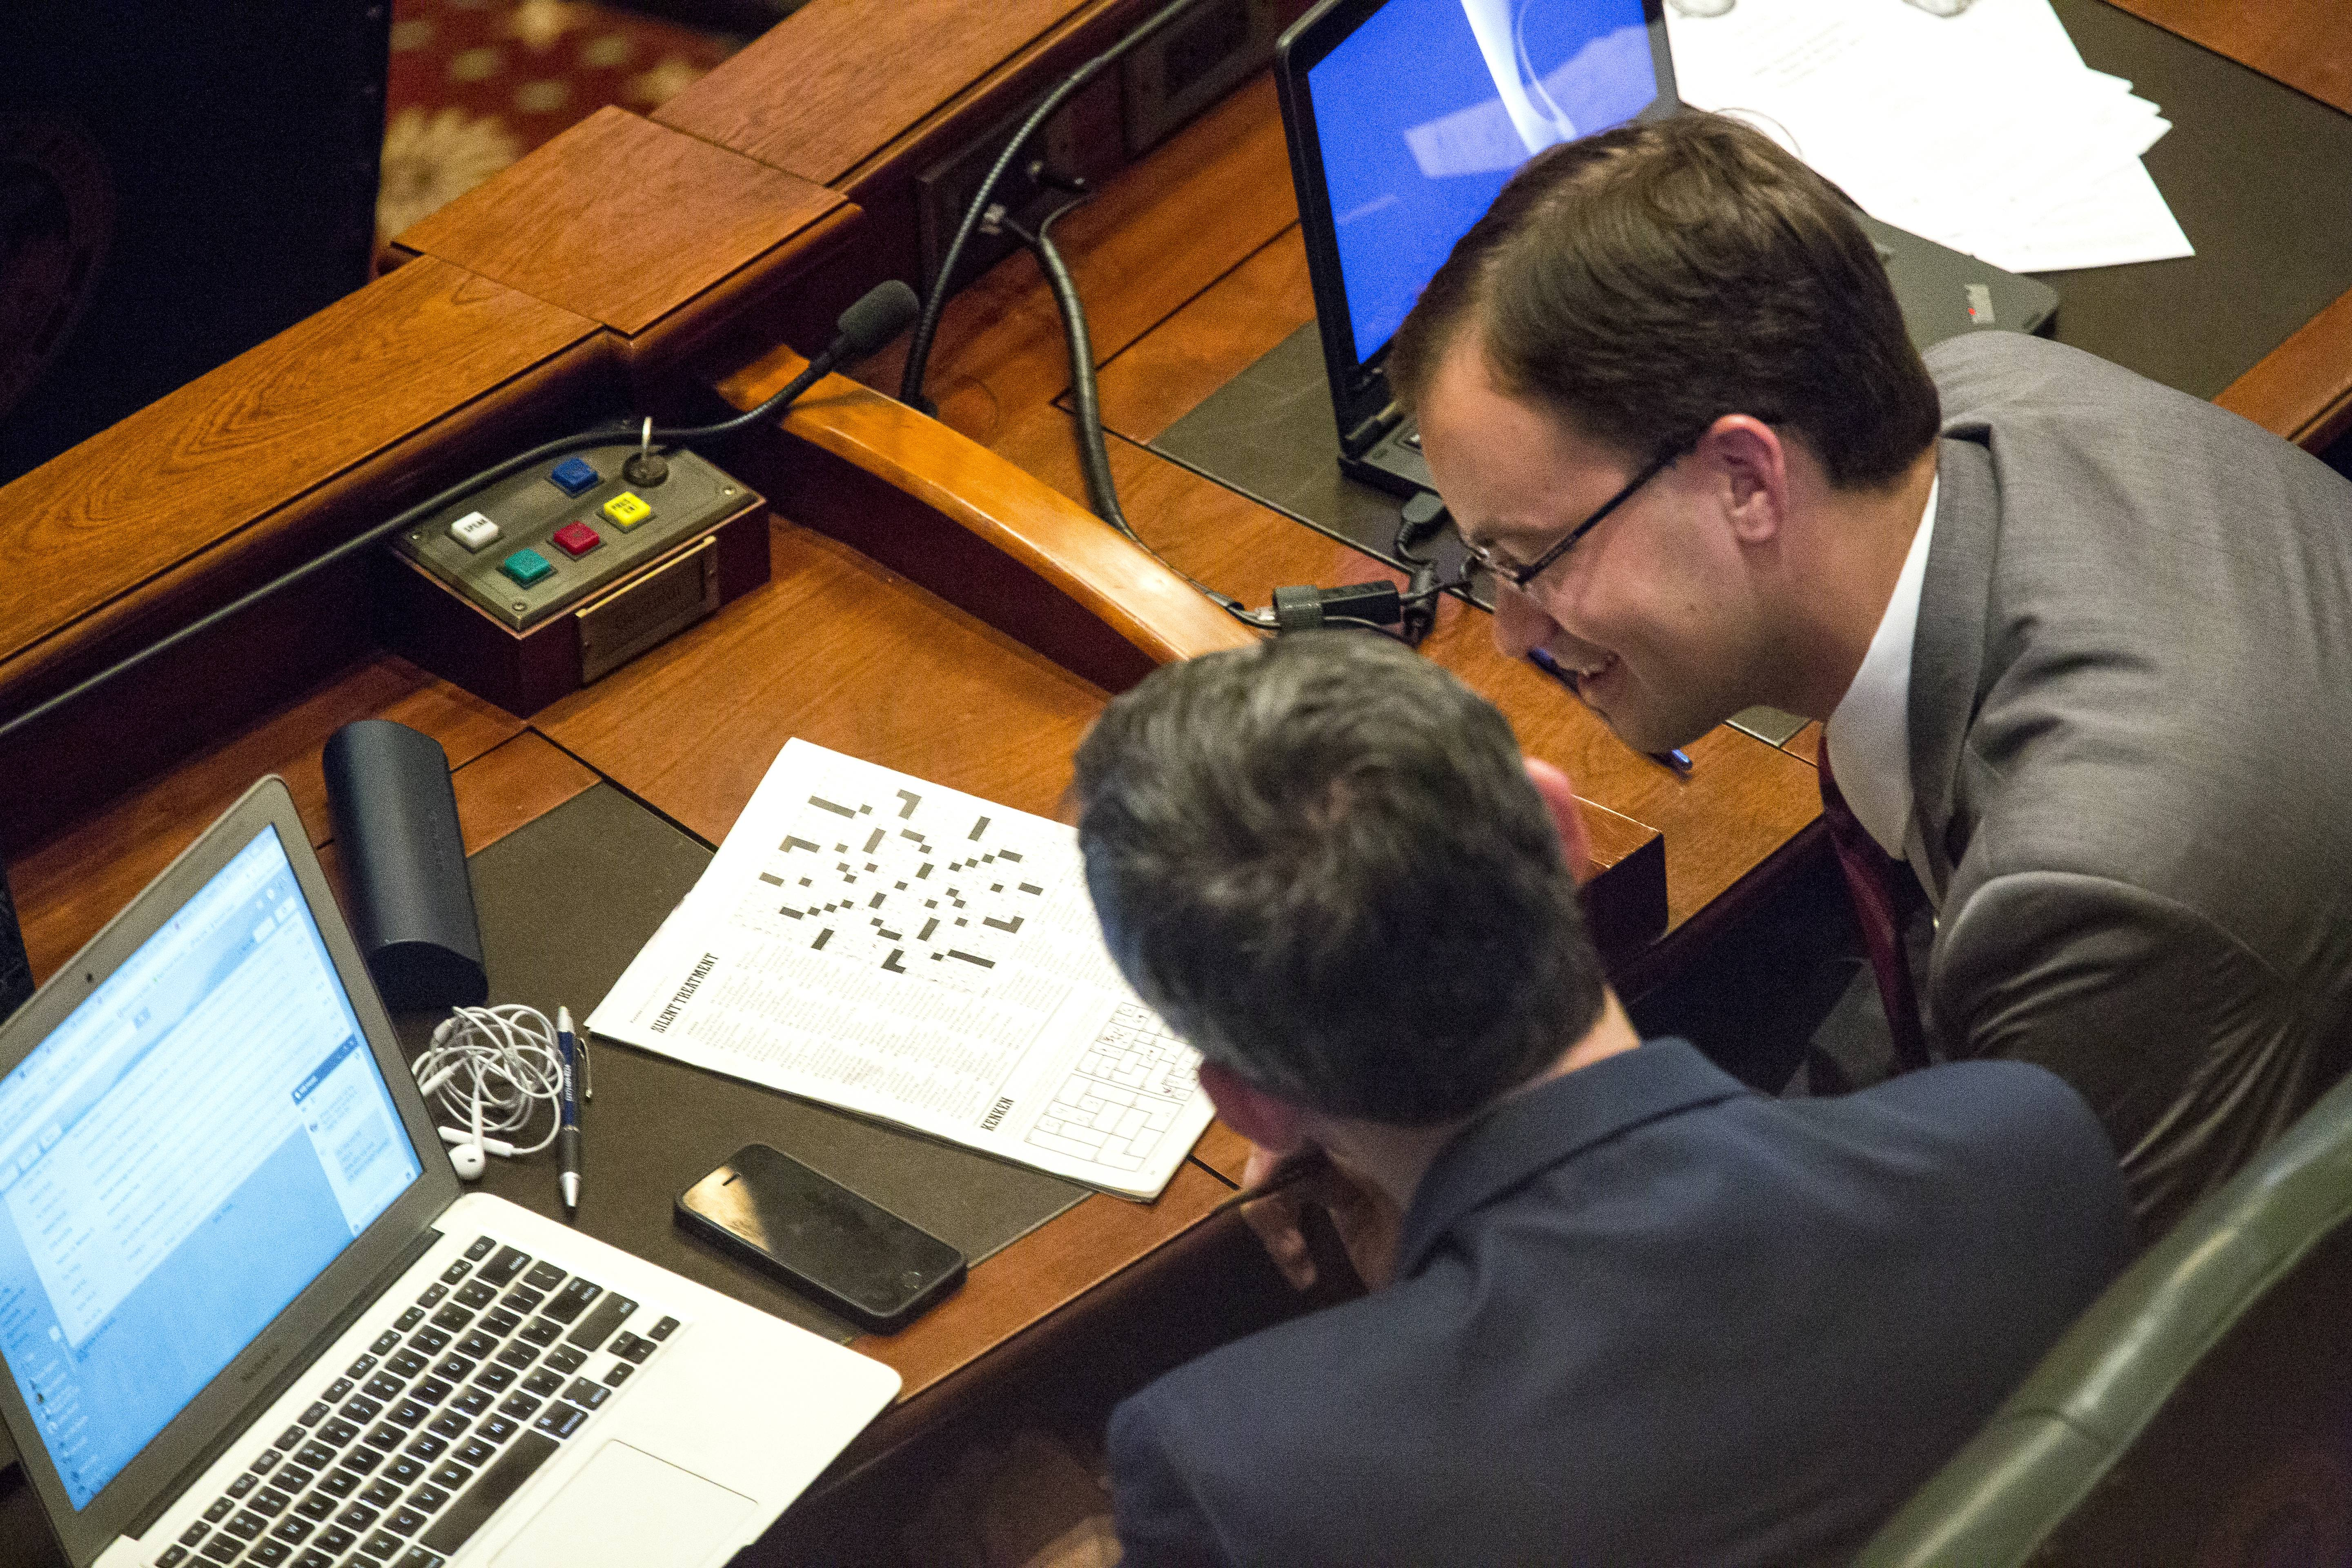 Rep. Will Guzzardi, D-Chicago, left, and Rep. David Olsen, R-Downers Grove, work on a puzzle on the House floor while the state Capitol is on lockdown during a hazardous materials incident Thursday, July 6, 2017 in Springfield, Ill. A financial showdown more than two years in the making was slated to play out in the Illinois House on Thursday as Democrats try to enact a $36 billion spending plan fueled by a 32 percent income tax increase over the Republican governor's objection. (Rich Saal/The State Journal-Register via AP)